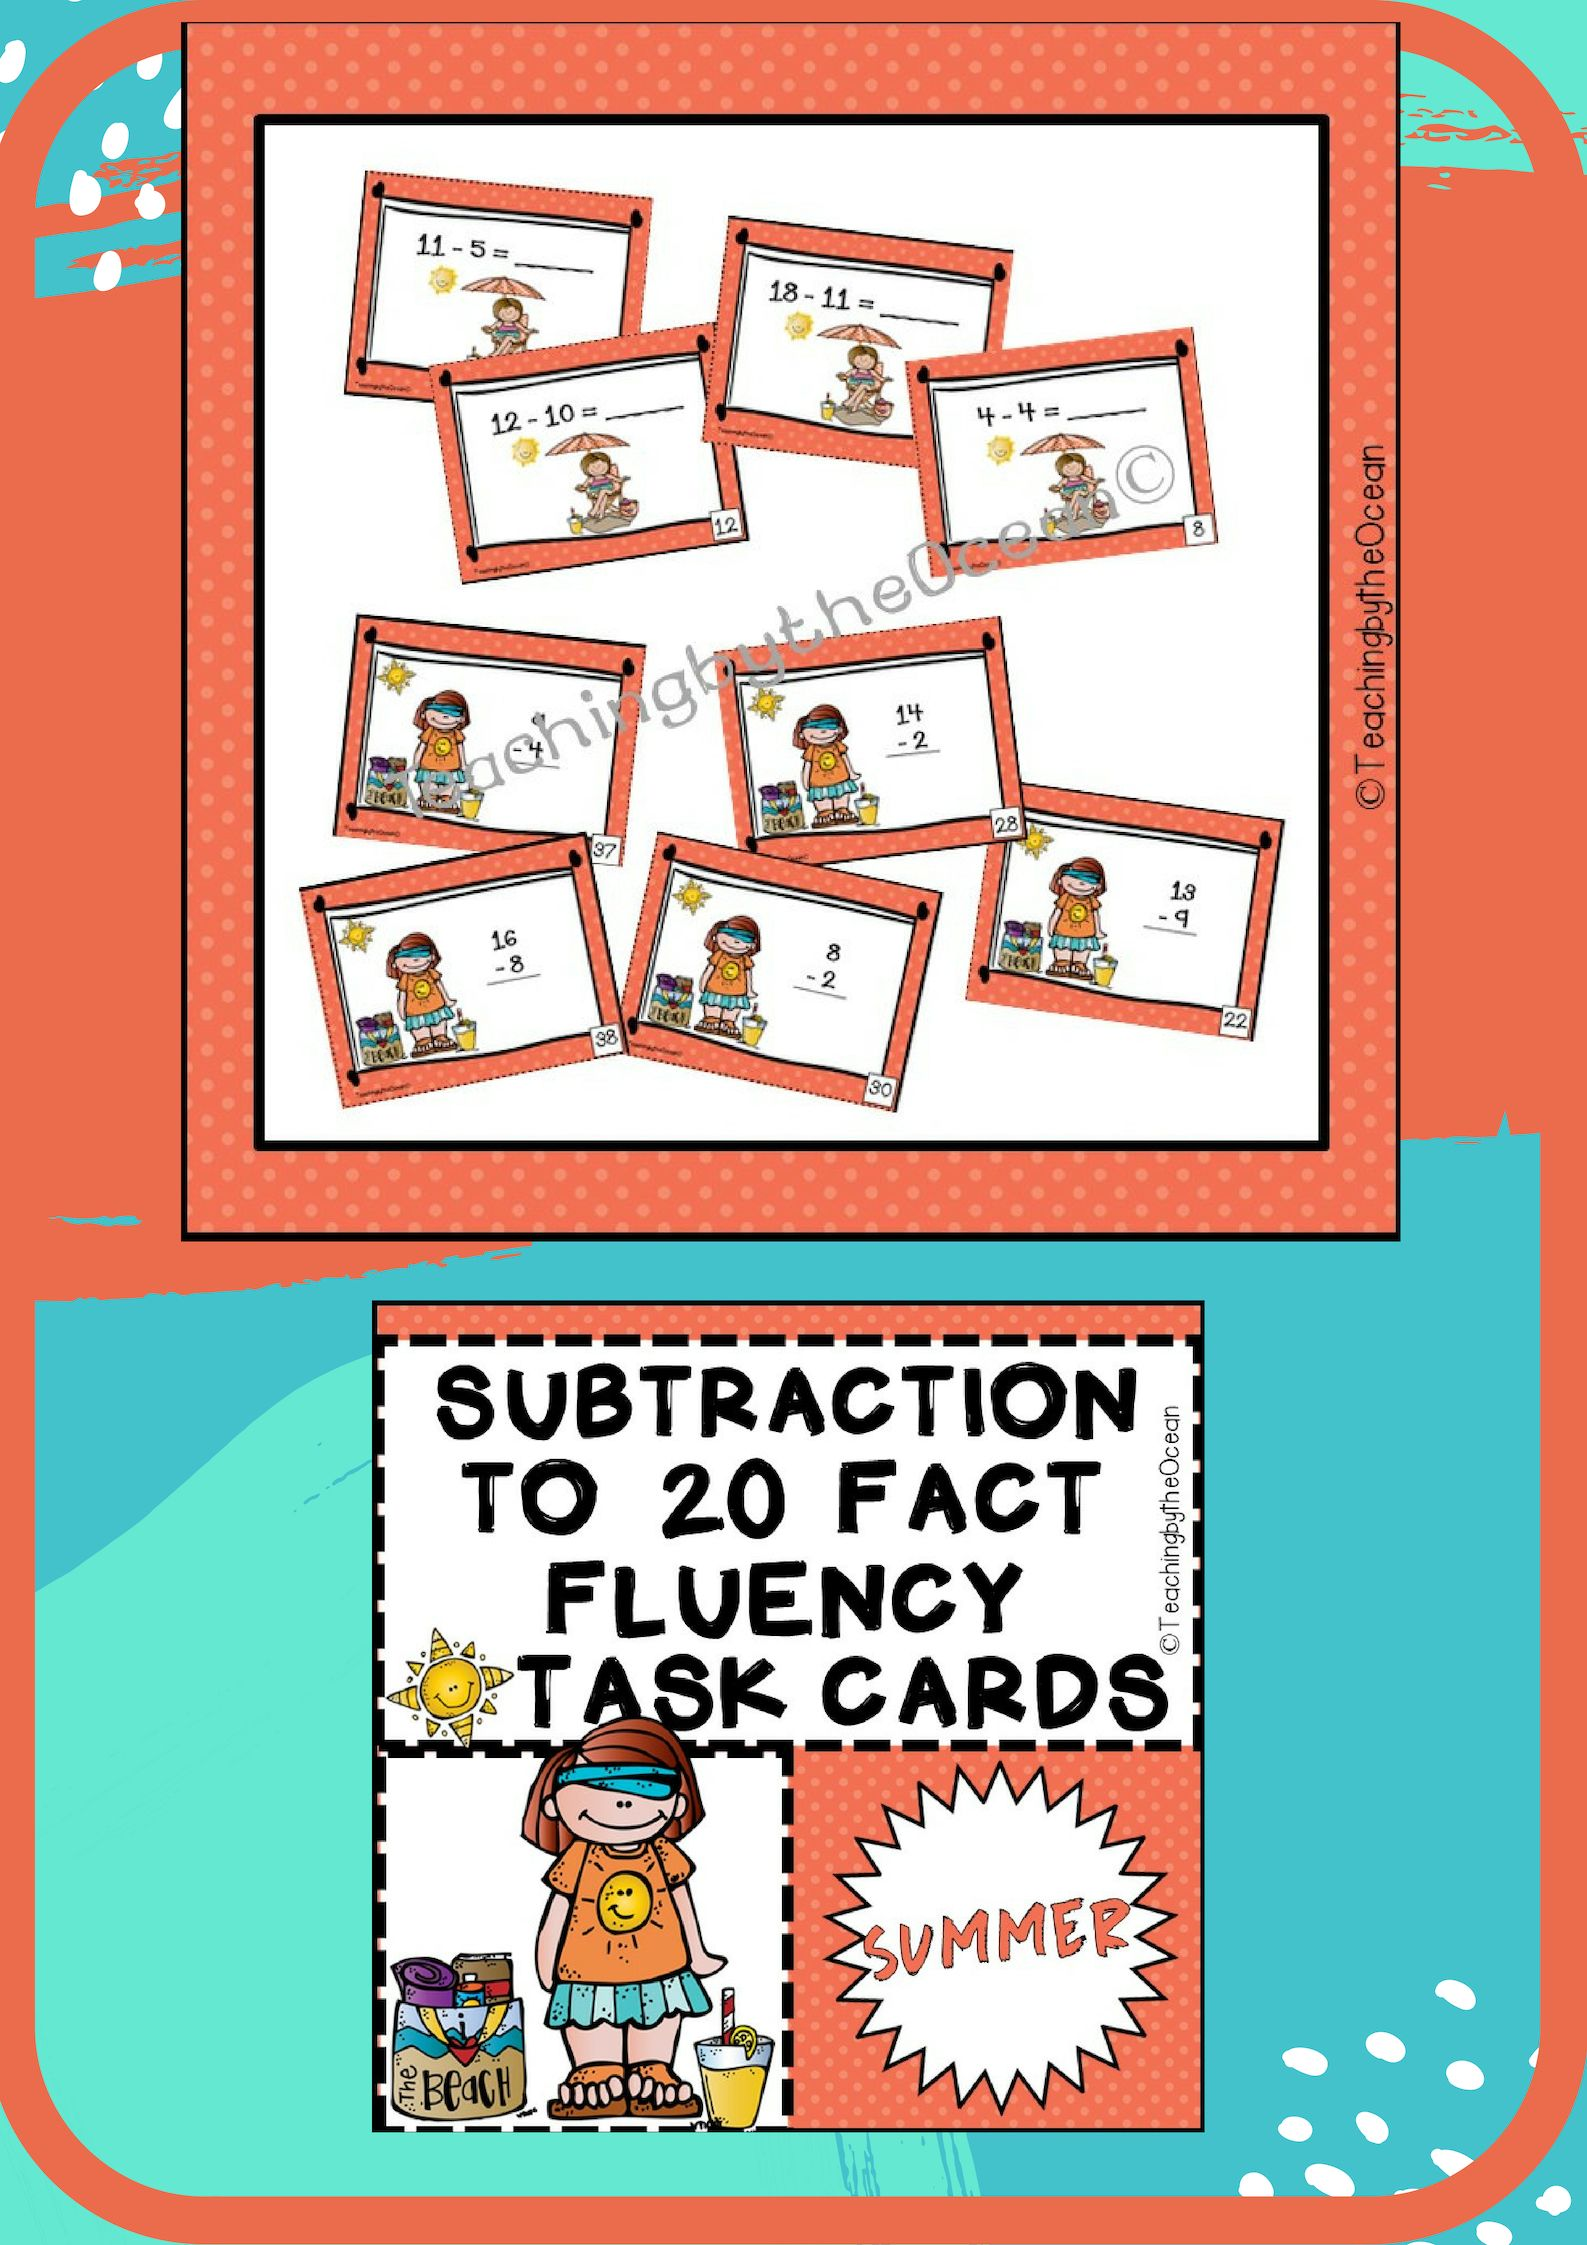 Subtraction To 20 Fact Fluency Task Cards